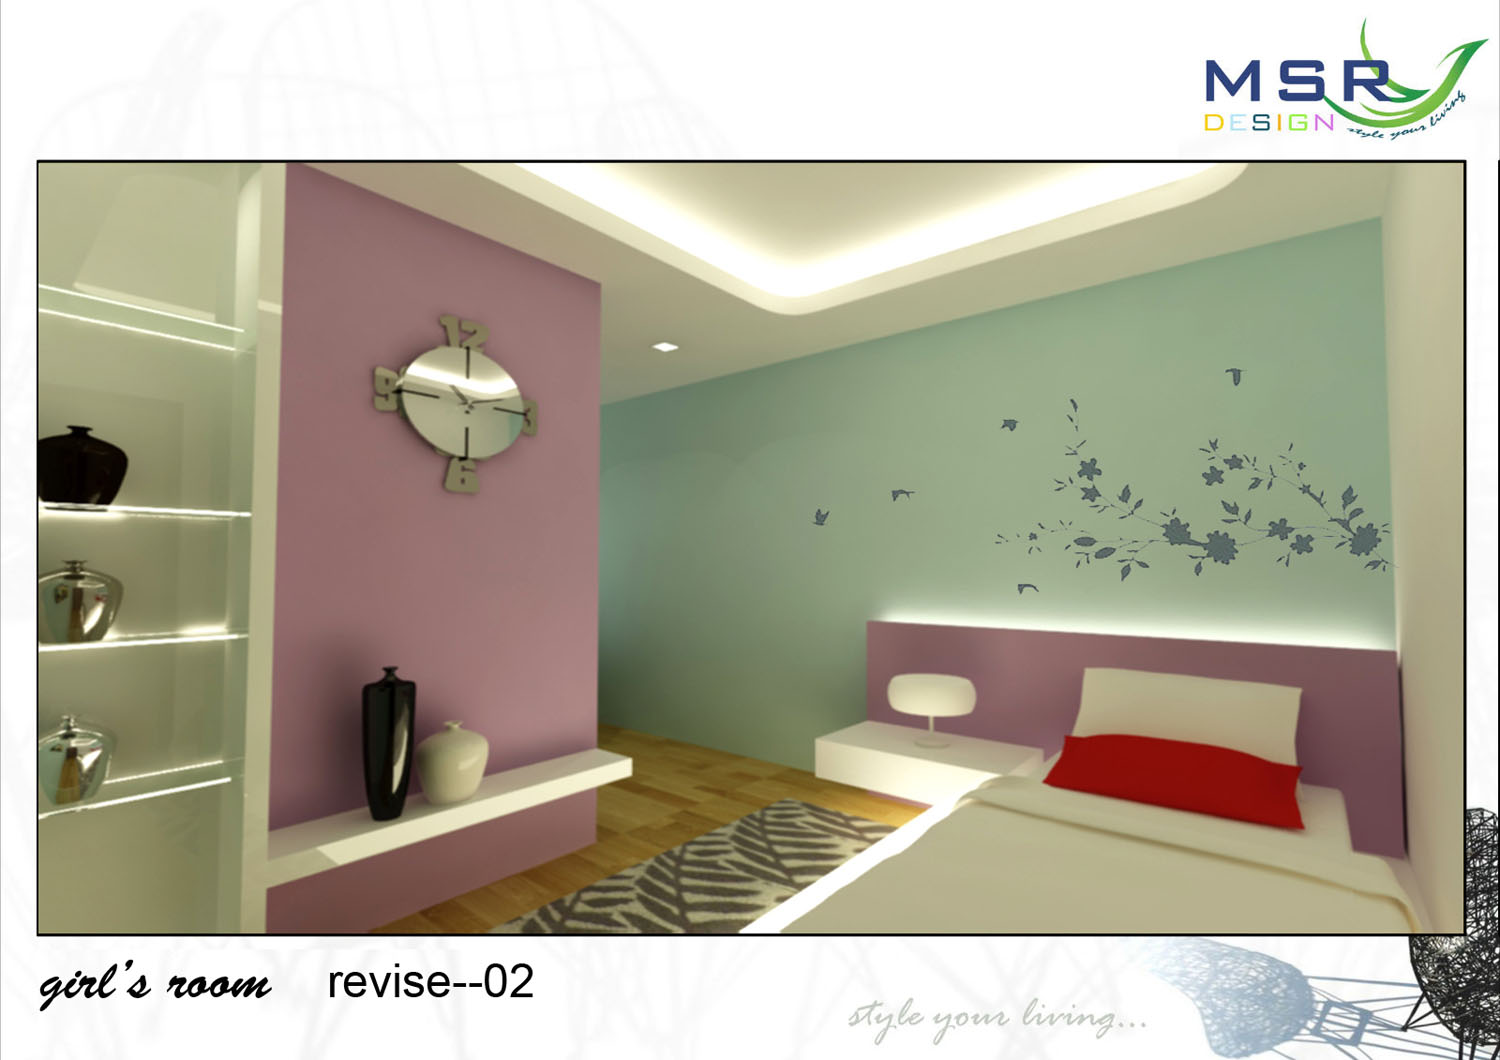 Mica Interior Design Mica Interior Design And Construction